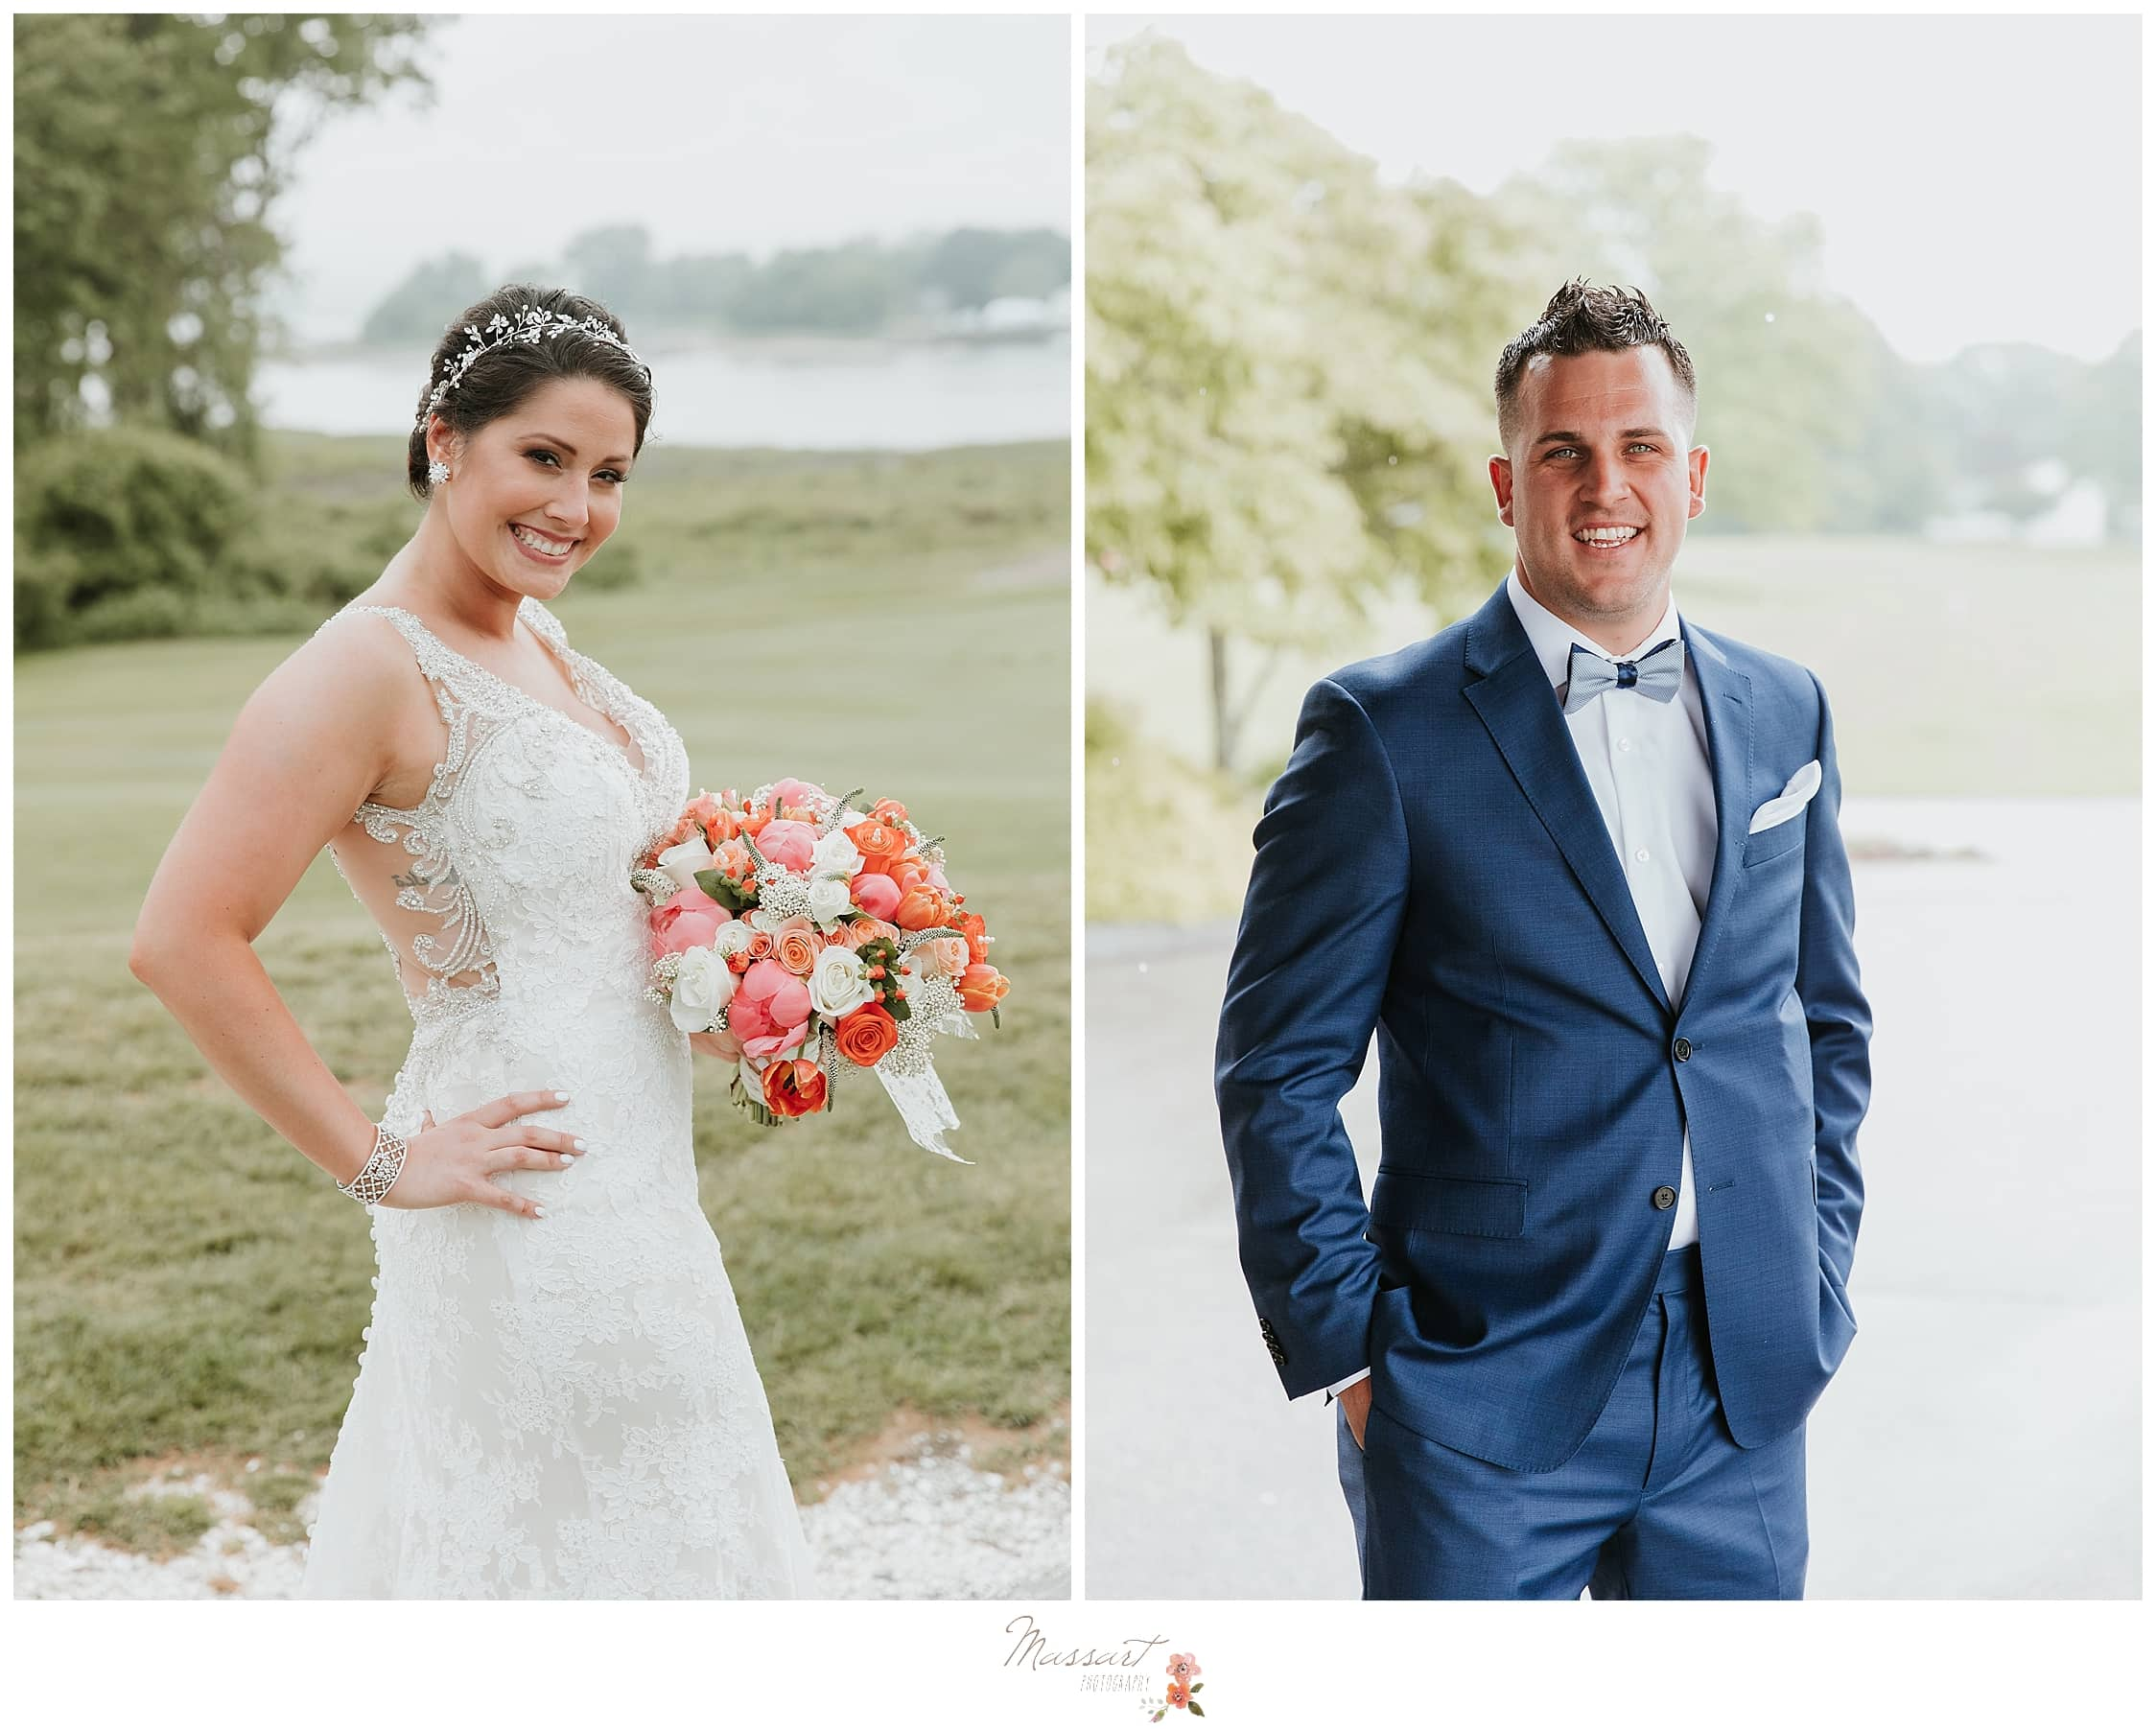 Summer bridal portrait and groom in navy suit photographed by Massart Photography, MA, CT and RI wedding photographers.